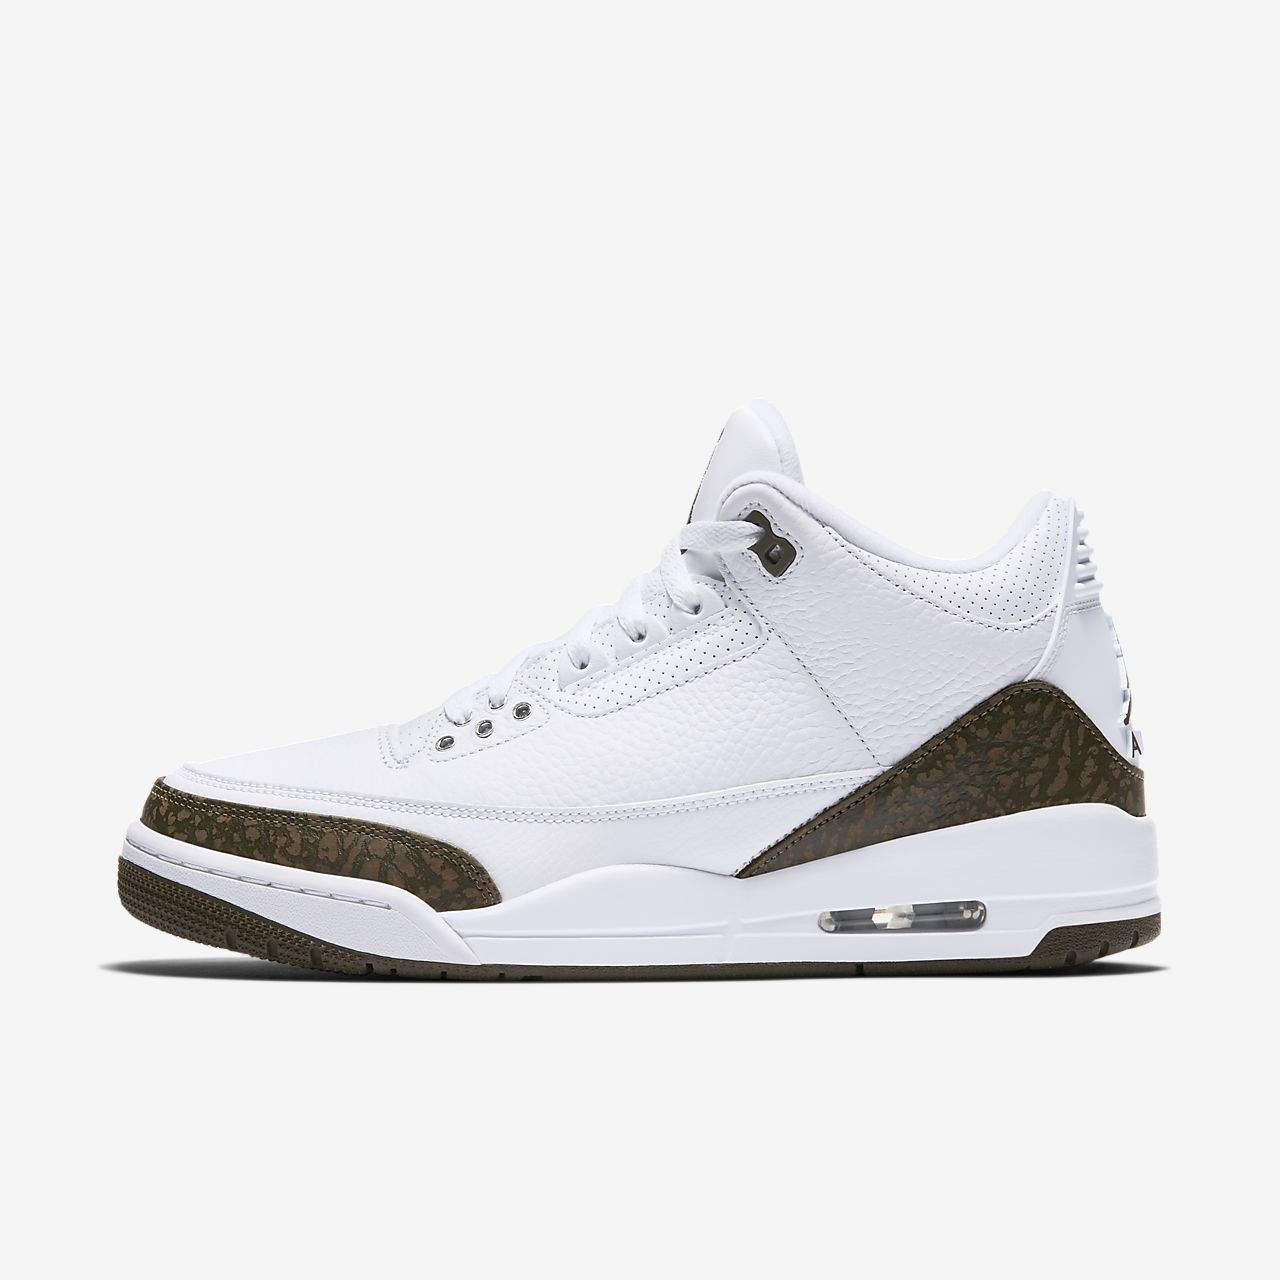 88a5a69e4b0 Air Jordan 3 Retro Men s Shoe. Nike.com VN